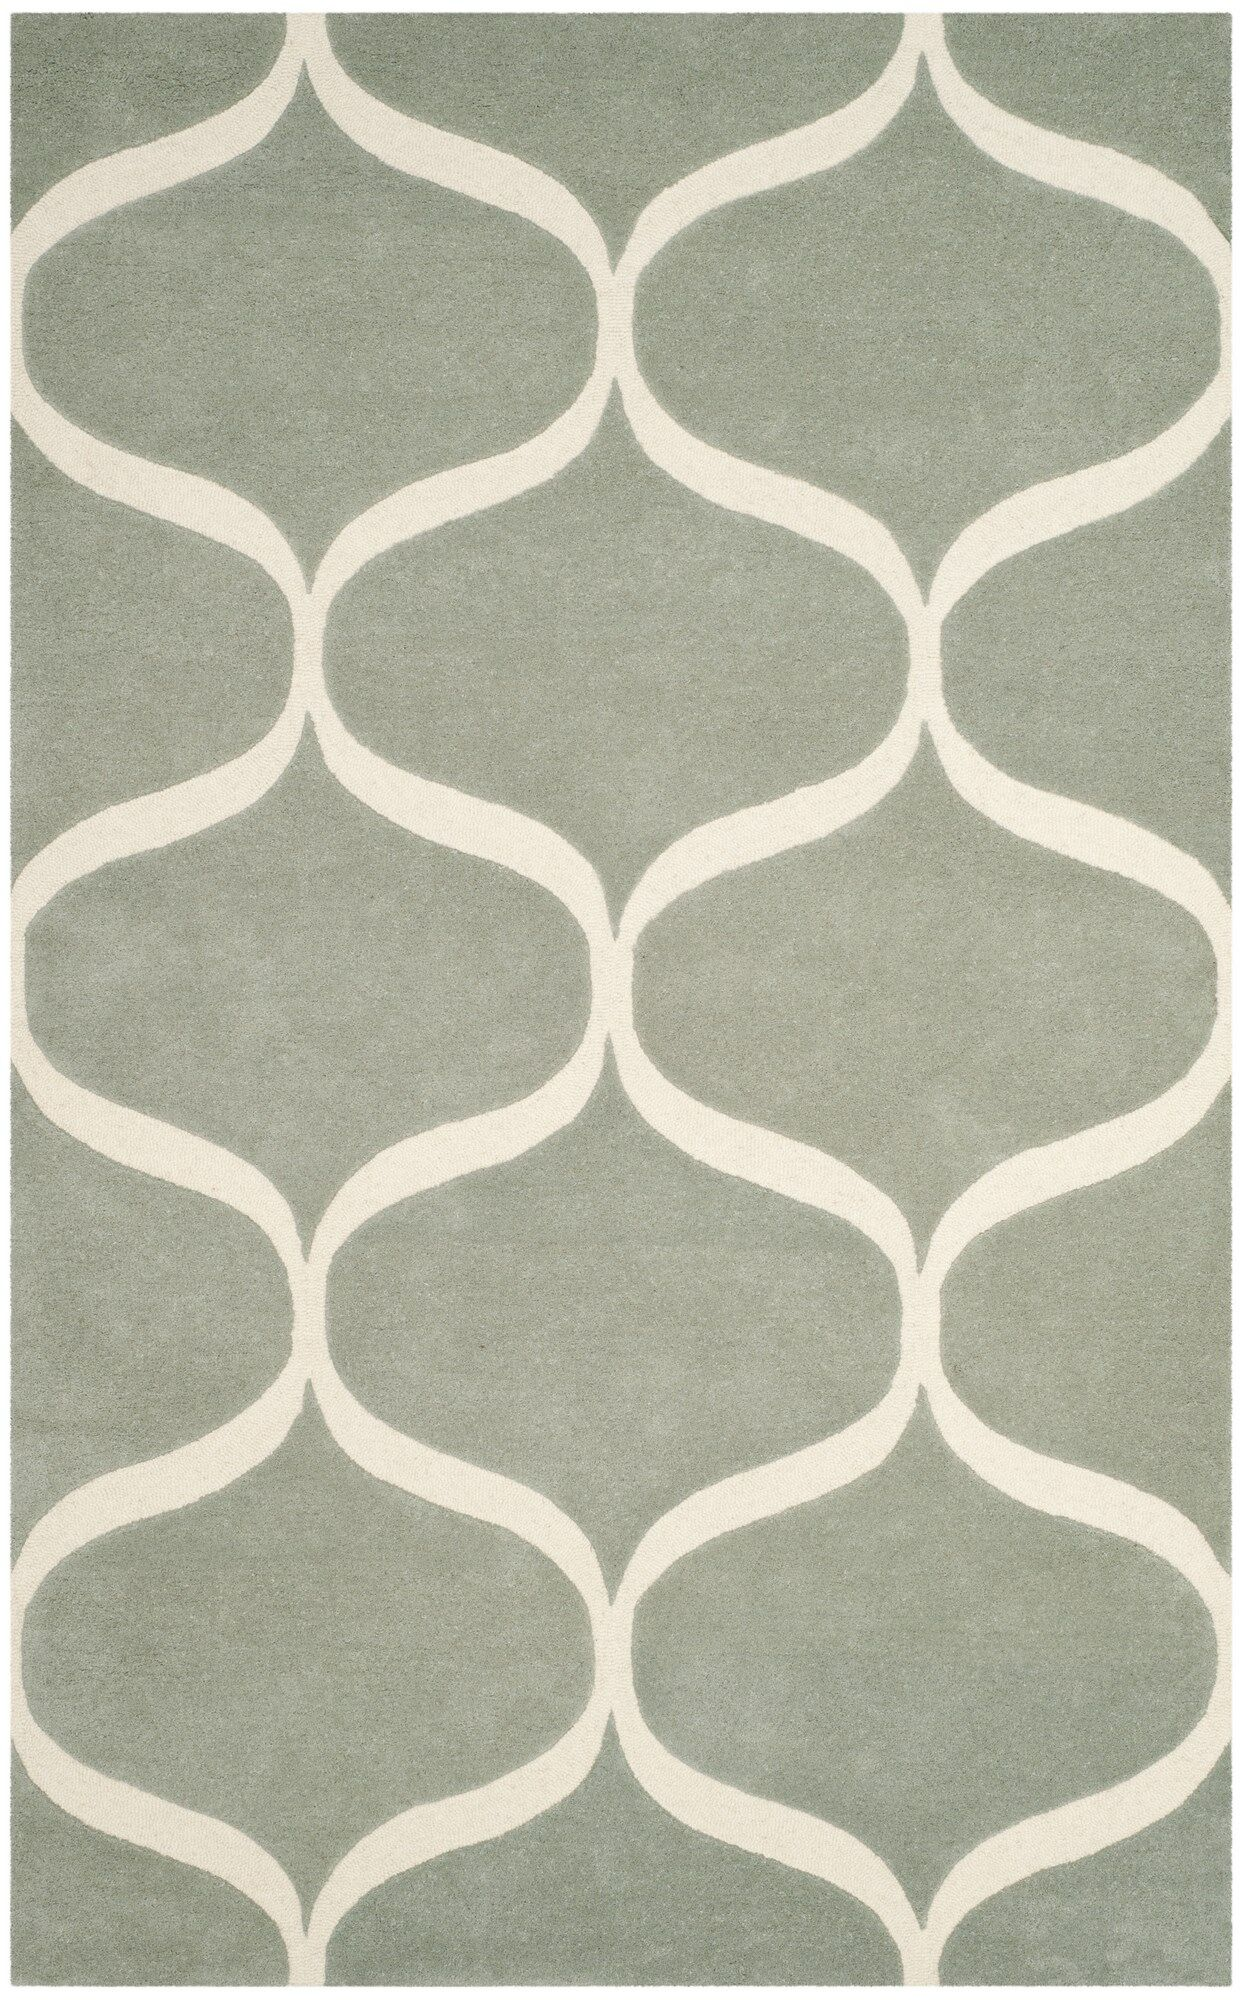 Martins Hand-Tufted Gray/Ivory Area Rug Rug Size: Rectangle 8' x 10'